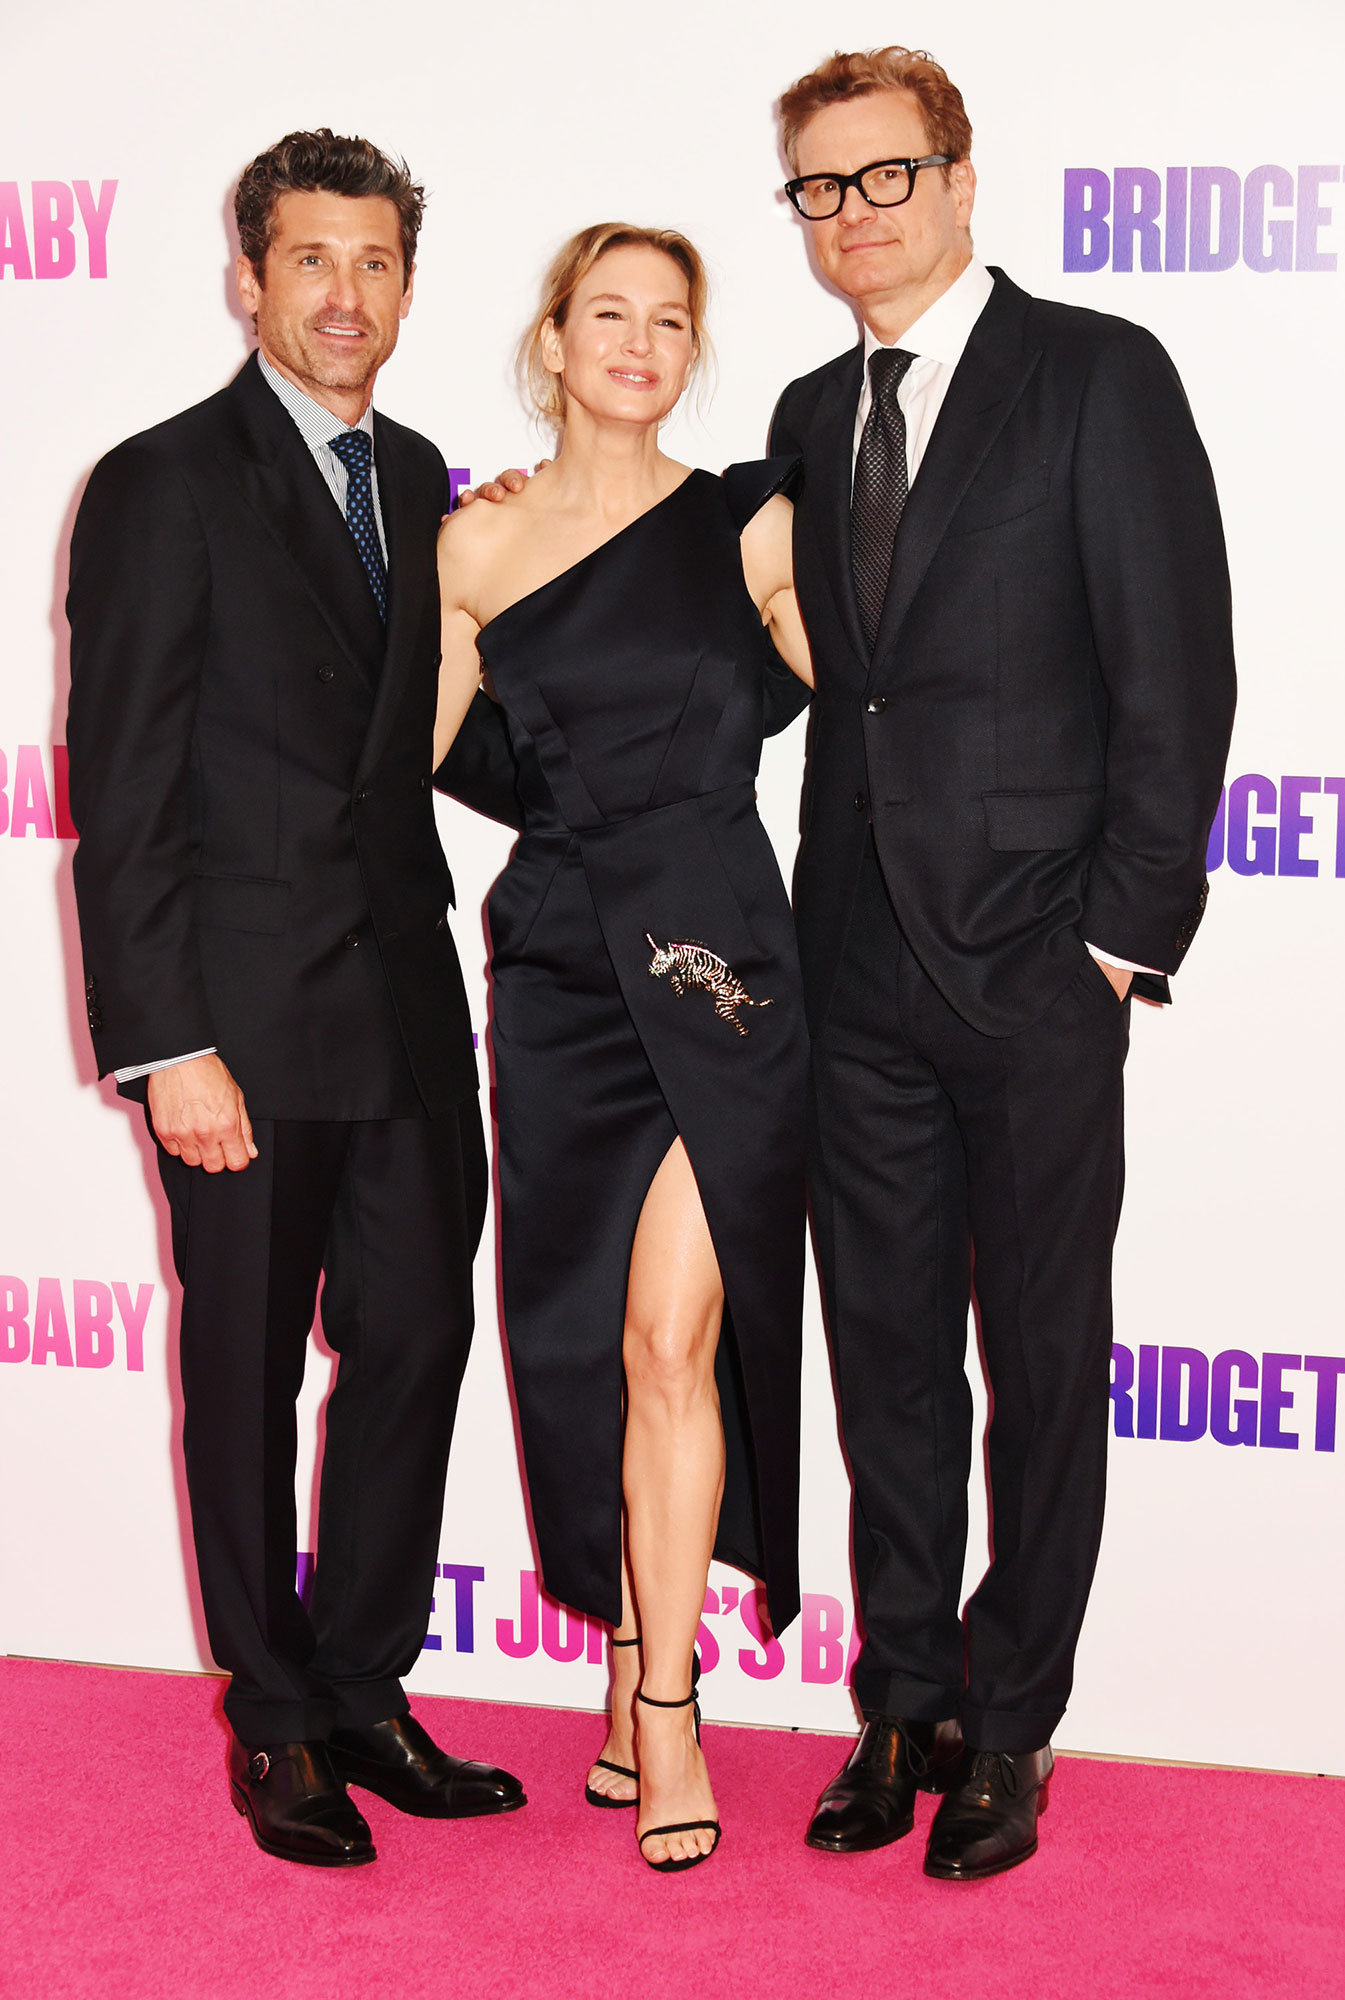 Patrick Dempsey Renee Zellweger Colin Firth